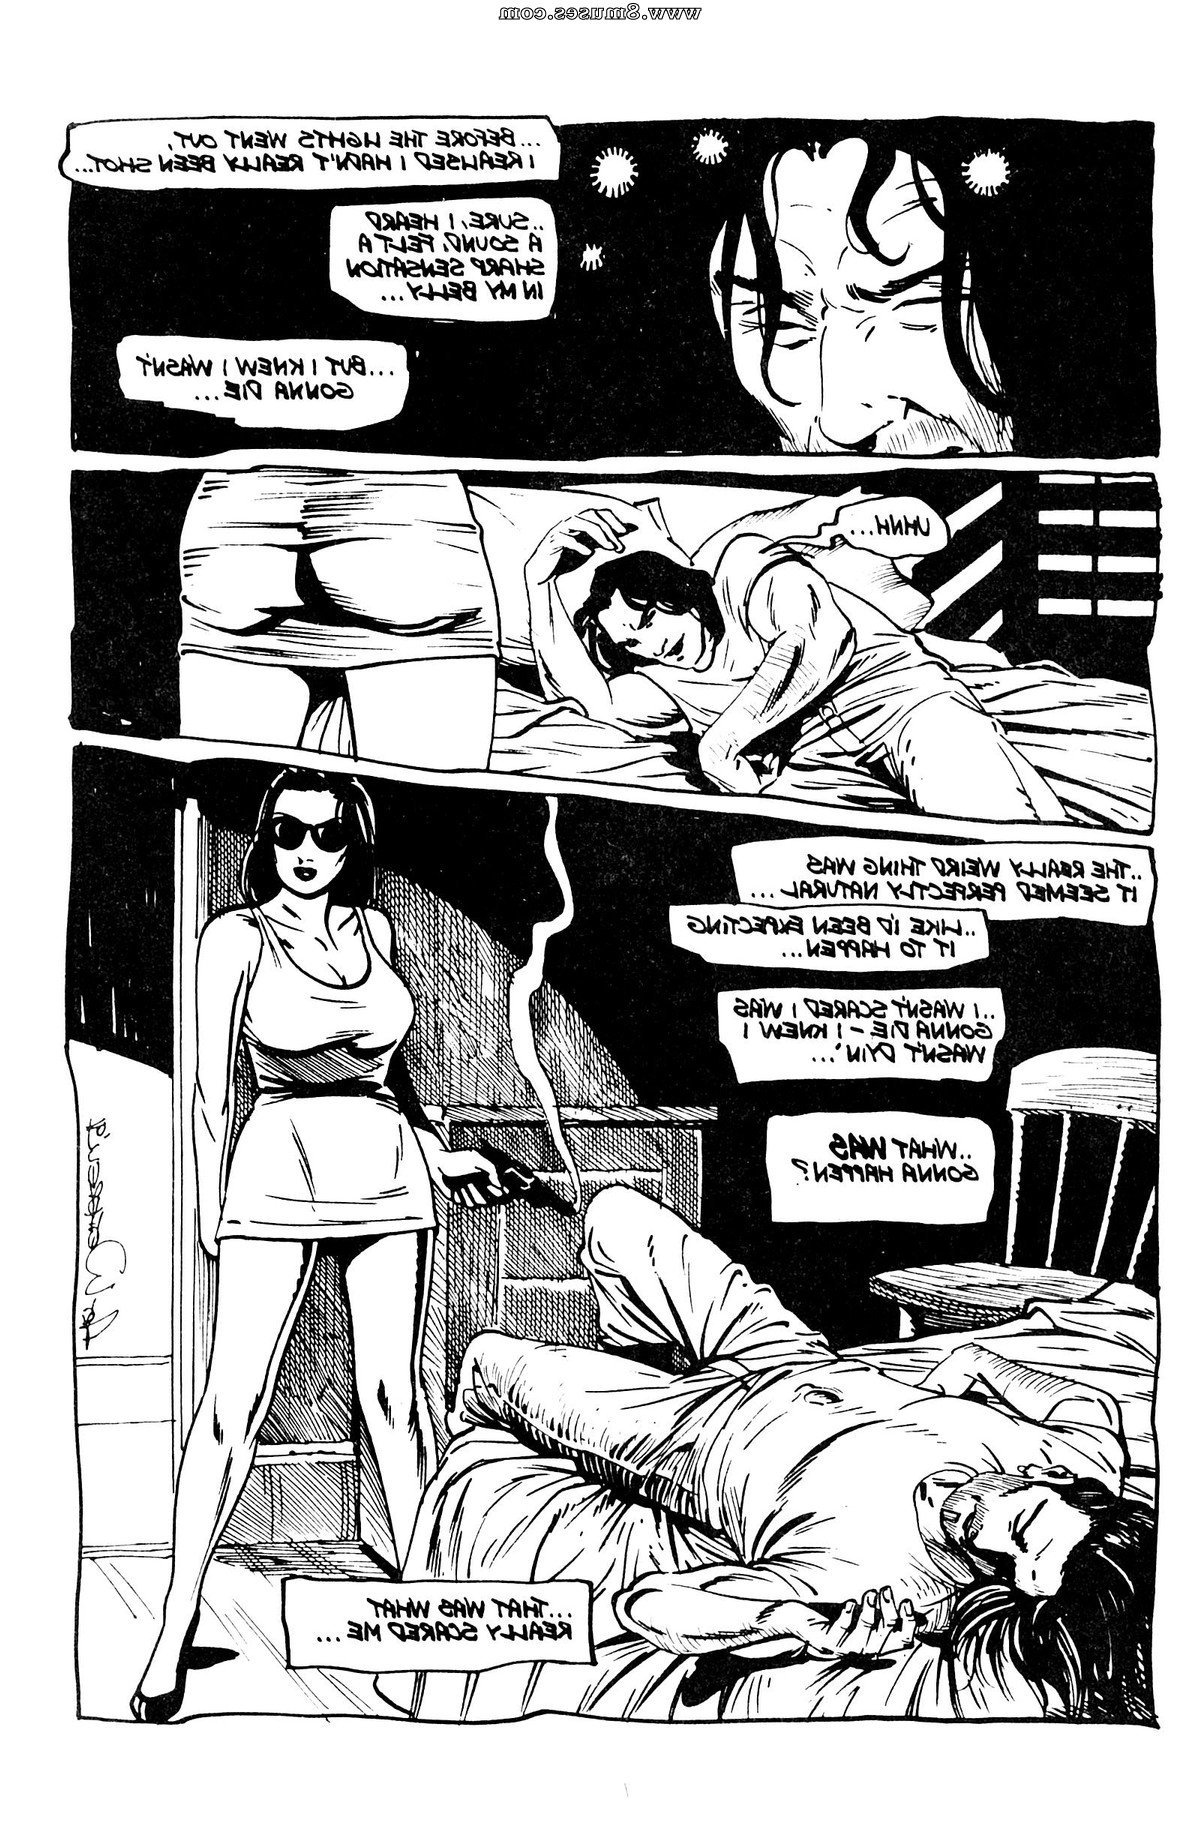 EROS-Comics/100-Degrees-In-The-Shade/Issue-1 100_Degrees_In_The_Shade_-_Issue_1_22.jpg